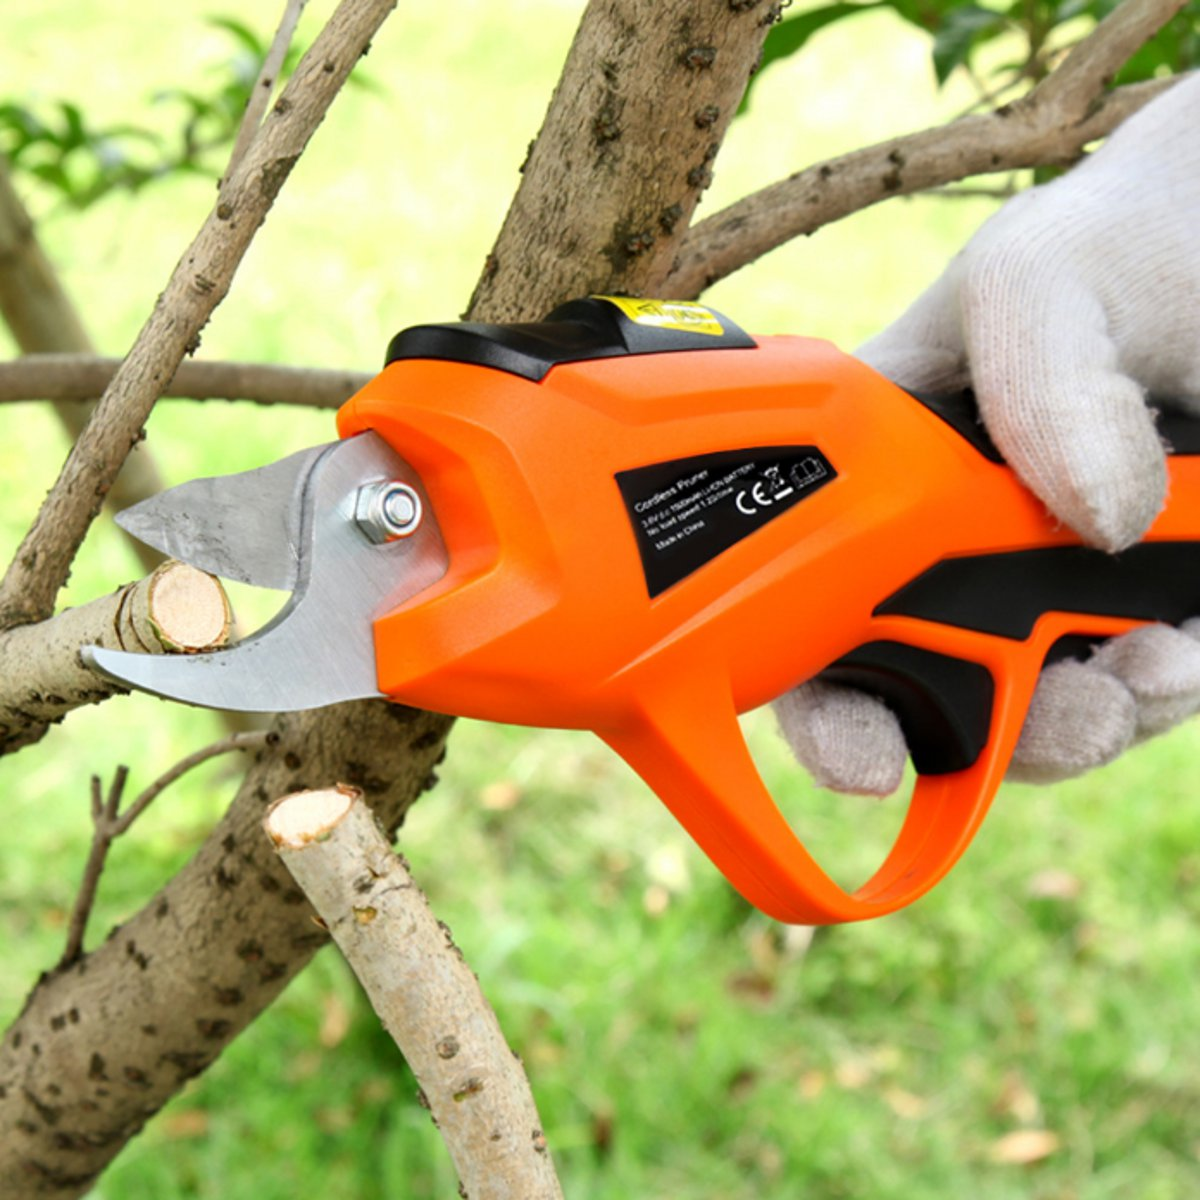 все цены на 3.6V Battery Electric Pruning Shears Cordless Orchard Branches Cutter Cutting Tools Pruner Scissor Garden Pruning Tools Secateur онлайн